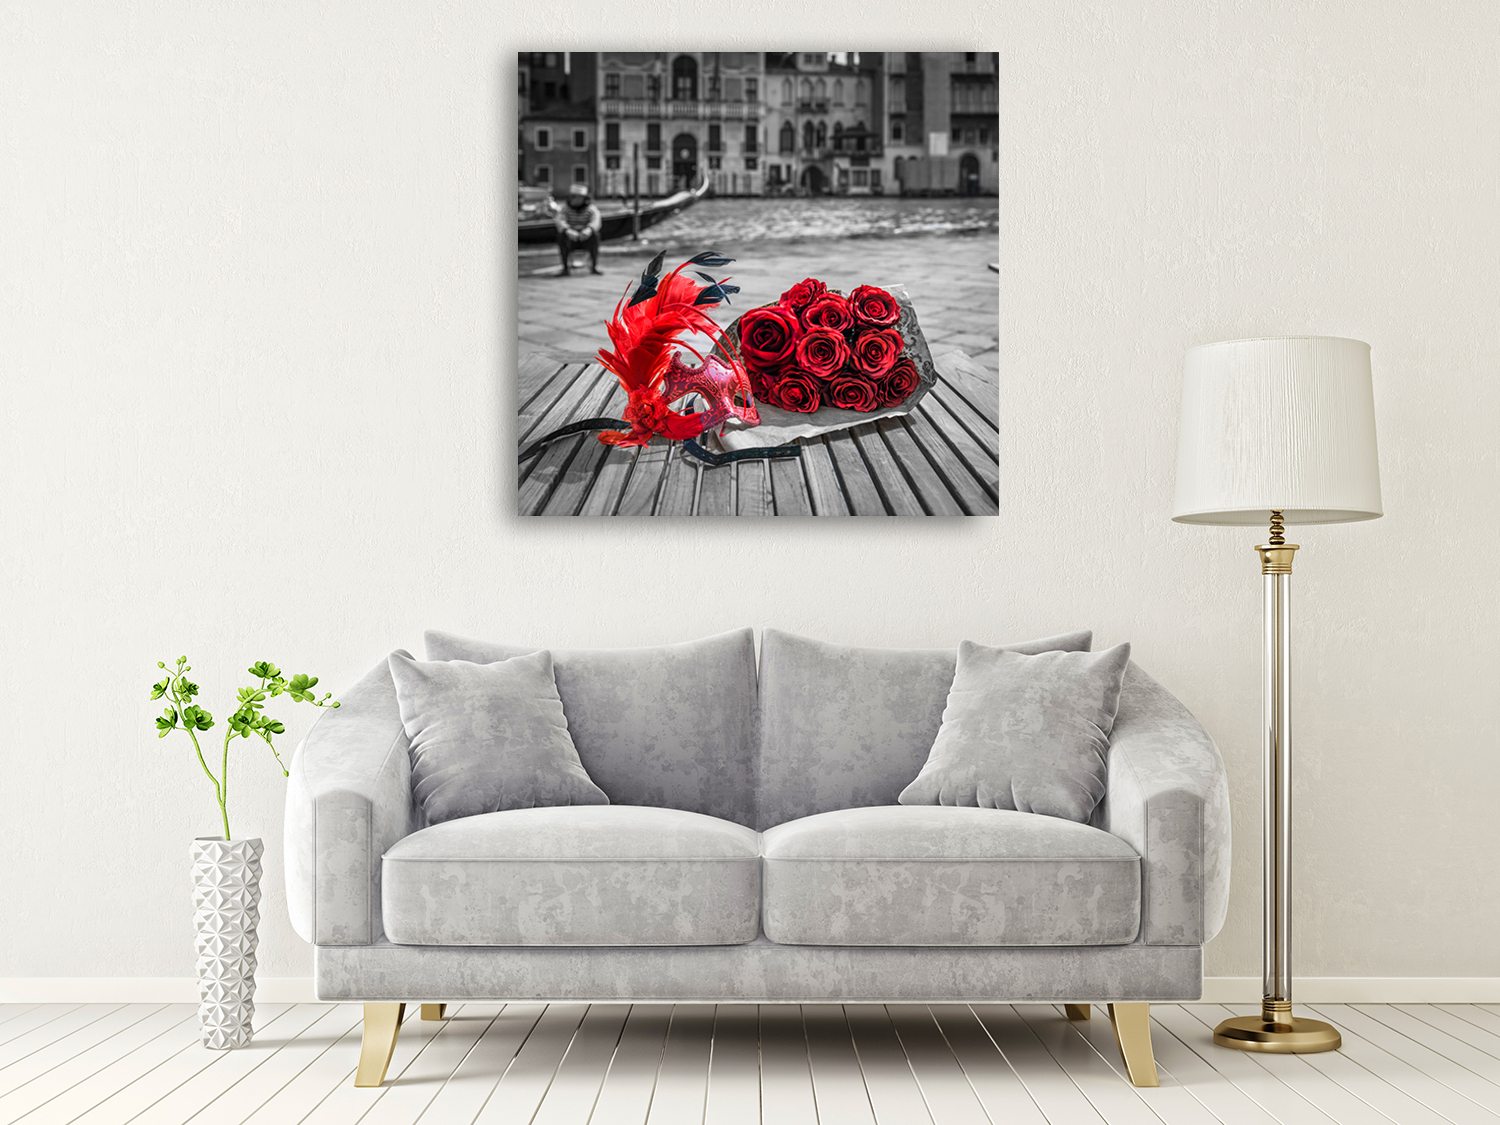 Square Venice Wall Art on Canvas